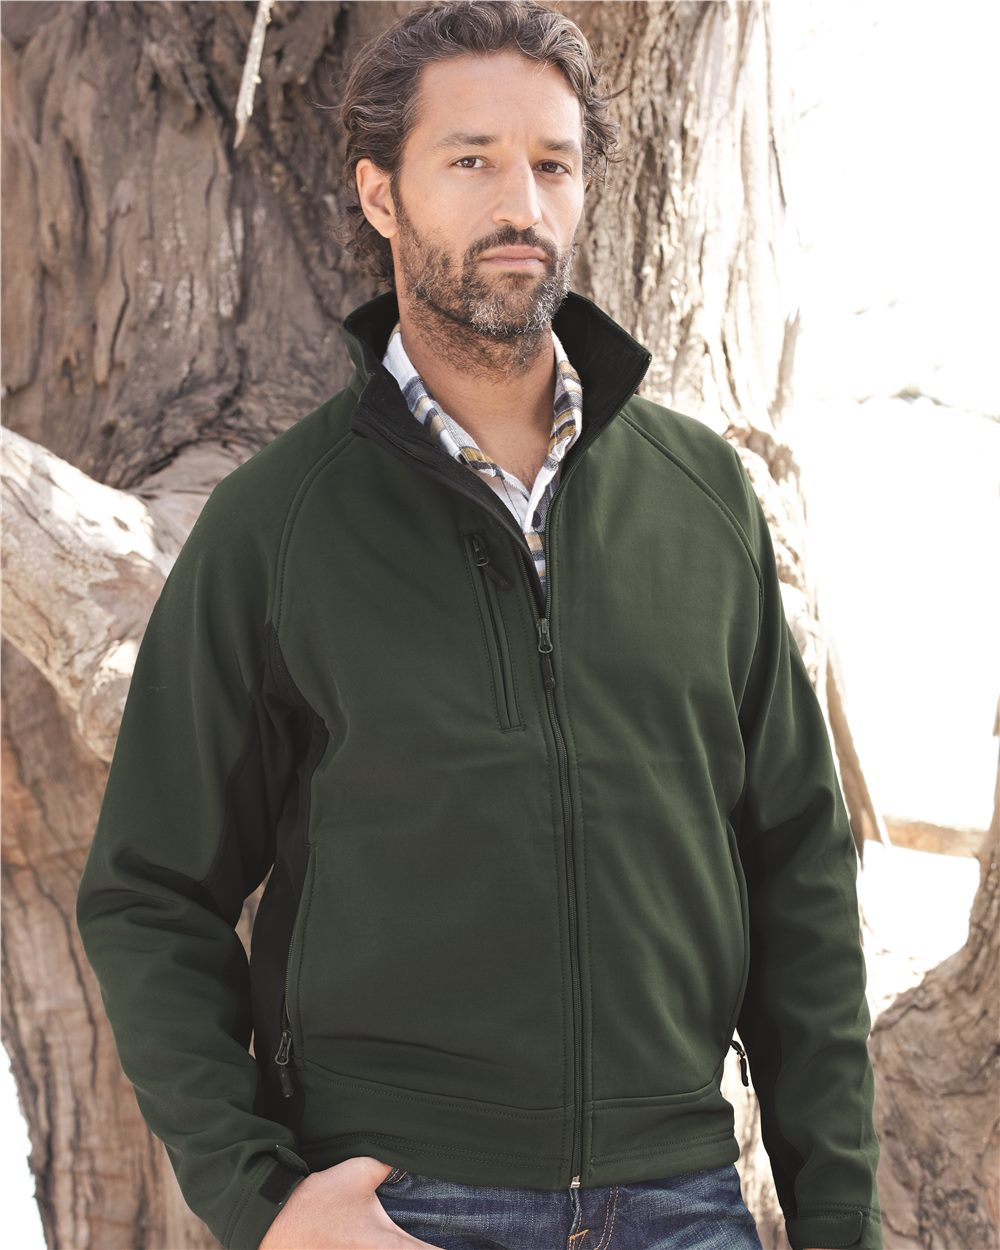 Stormtech CXJ-1-Bonded Thermal Soft Shell Jacket with Dupont Teflon